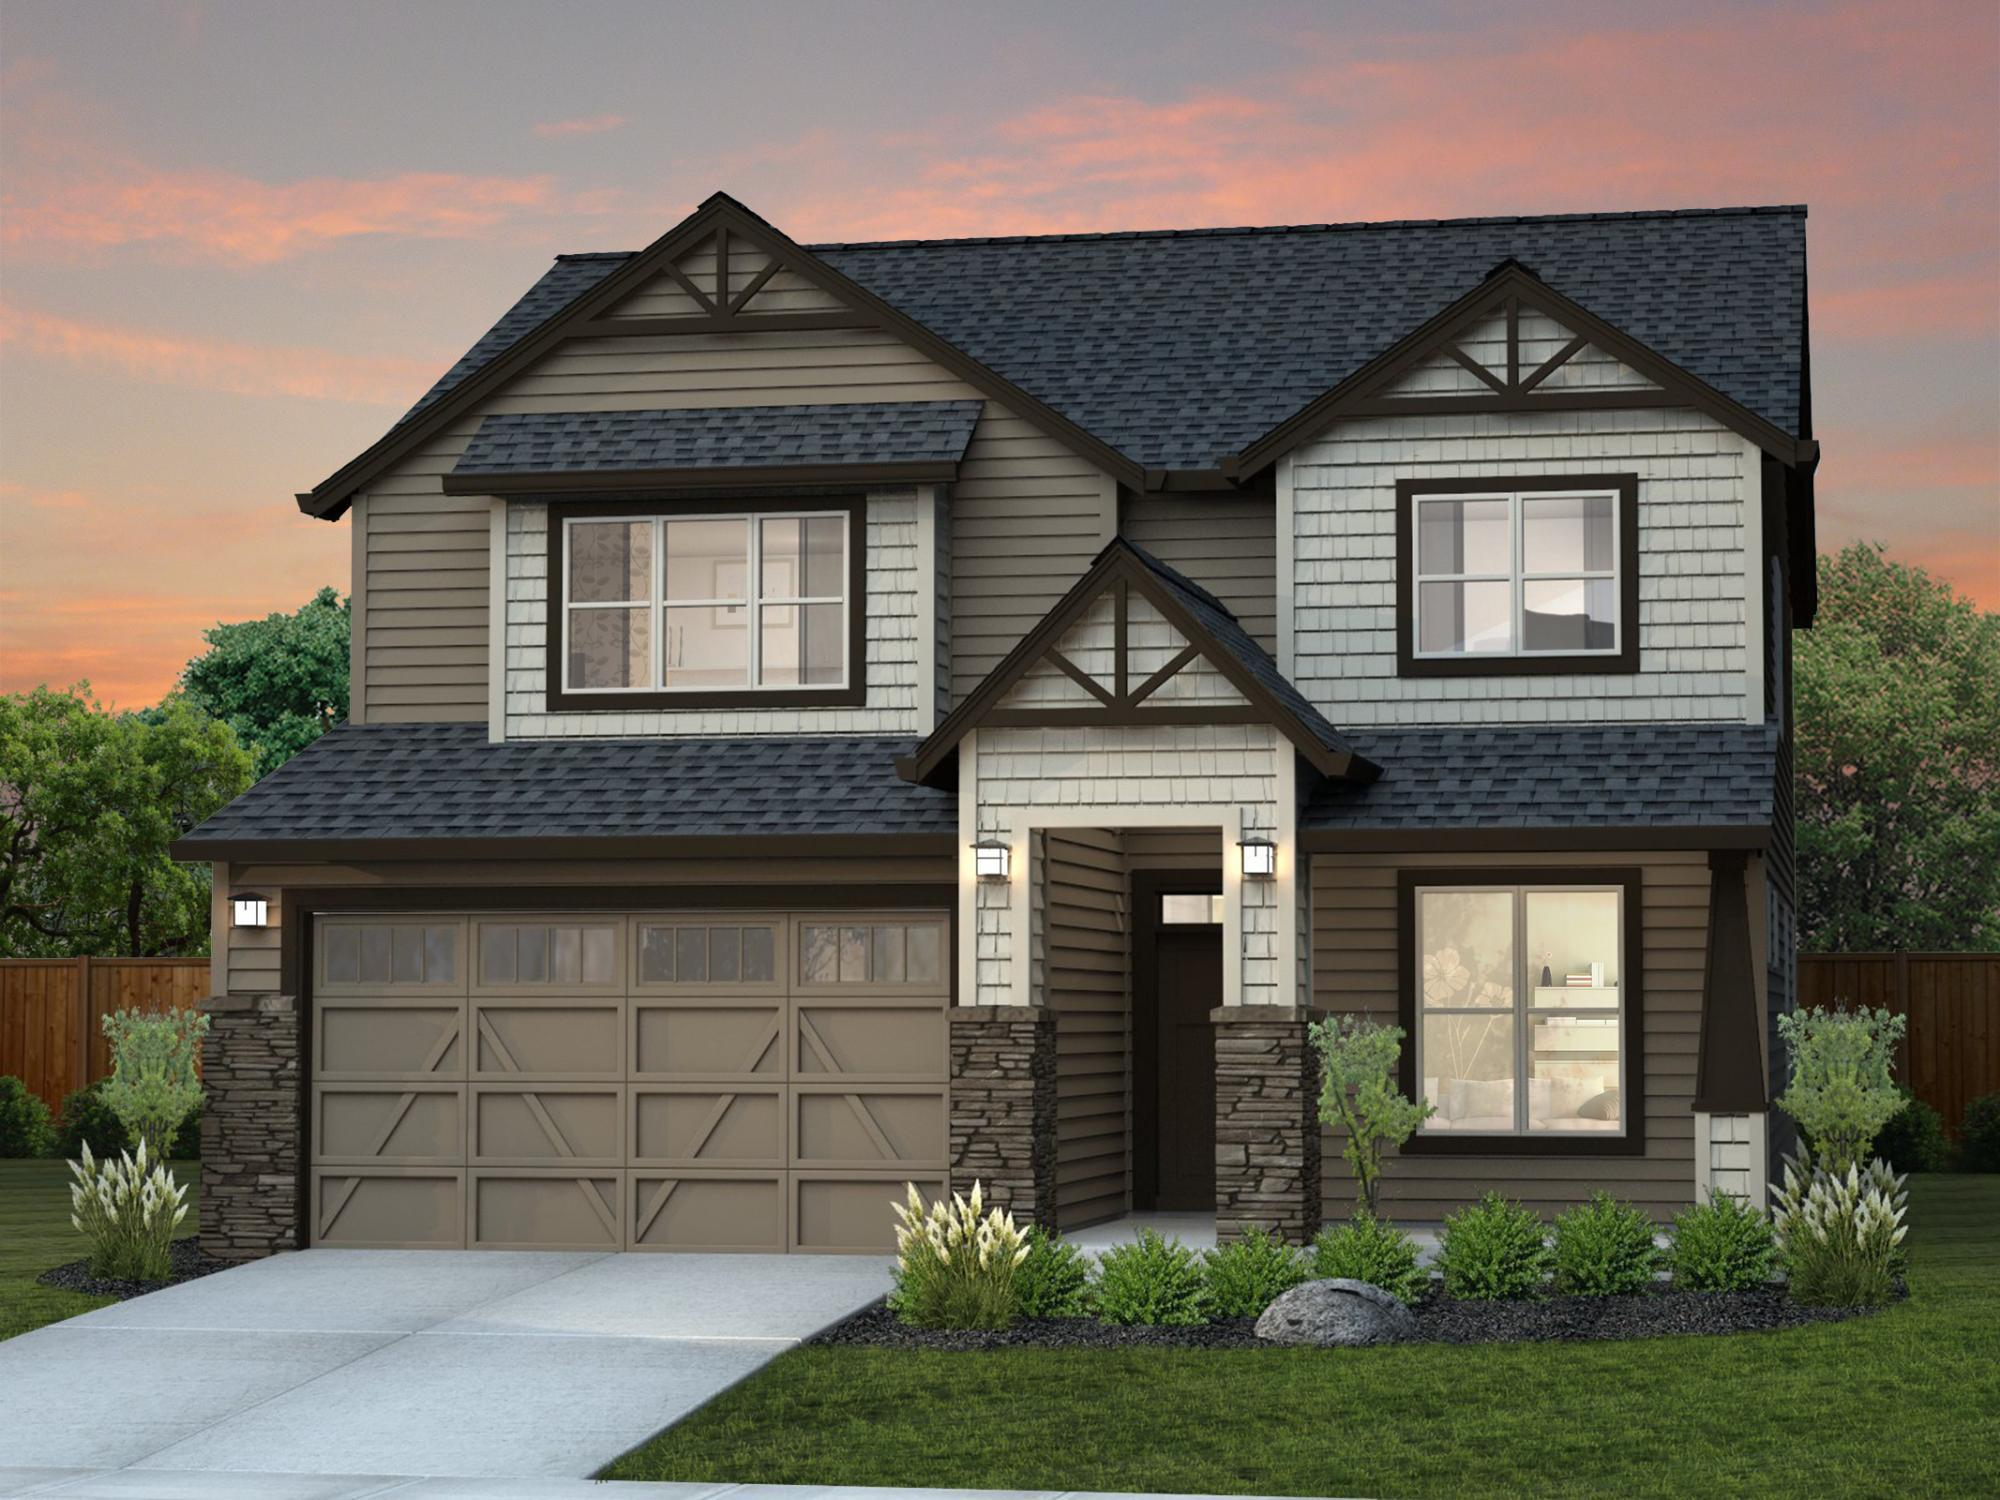 New Tradition Homes New Home Plans in Portland Vancouver OR